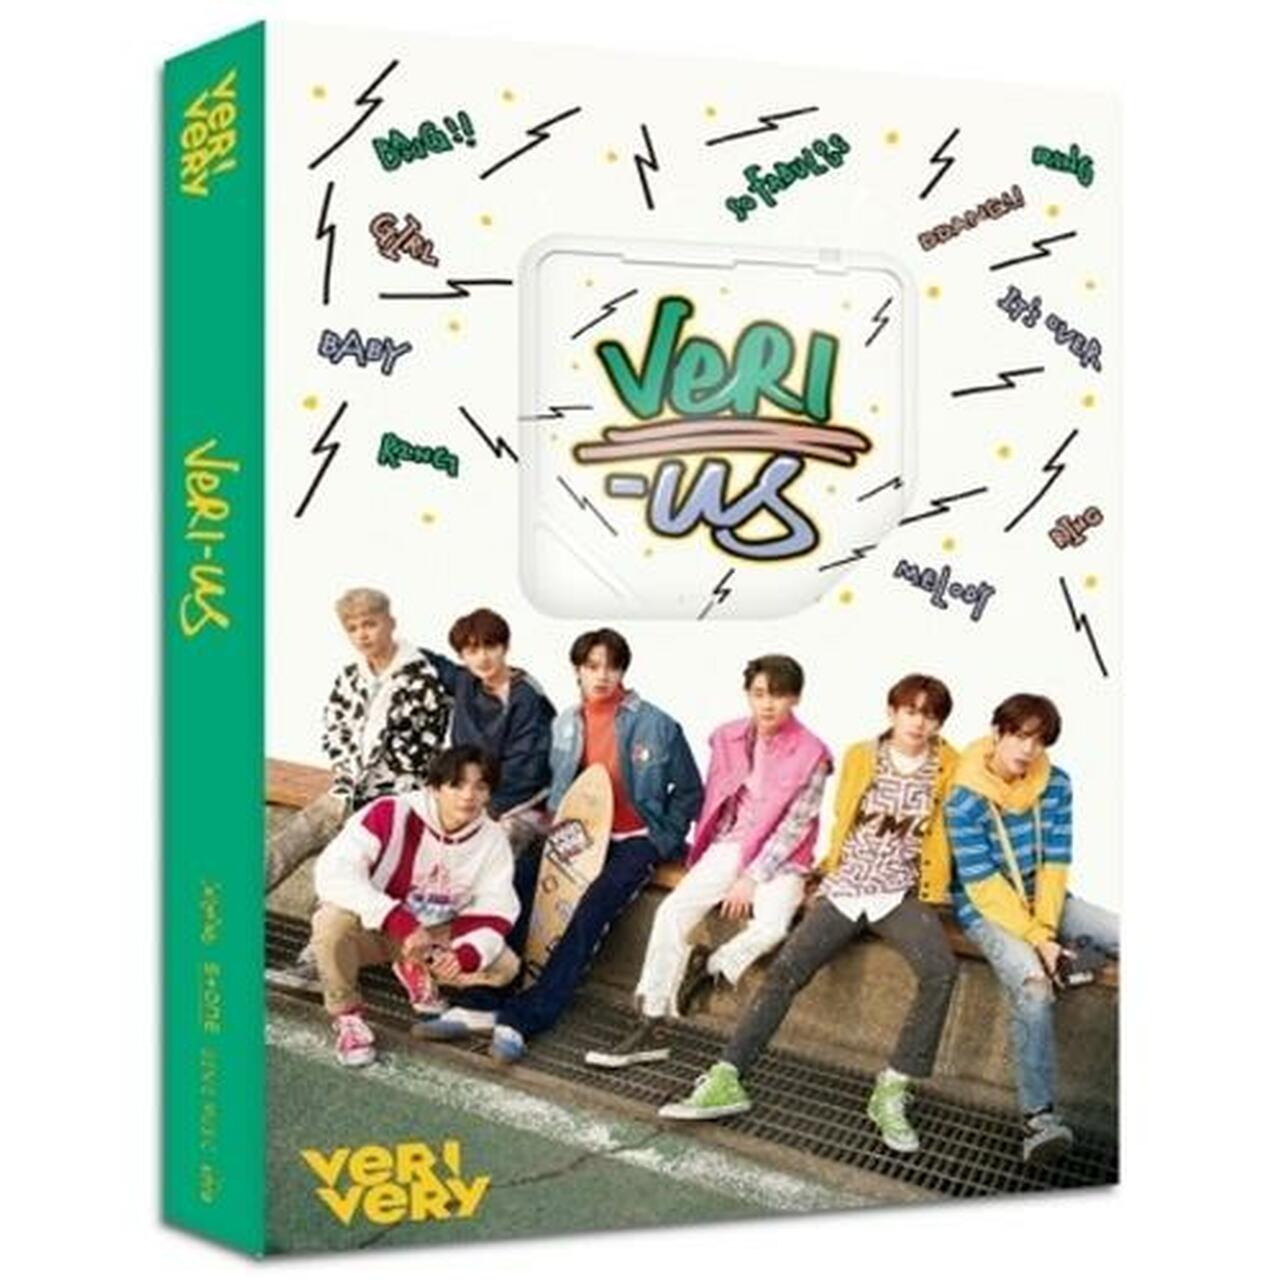 VERIVERY - 1st Mini [VERI-US]  (KIHNO)